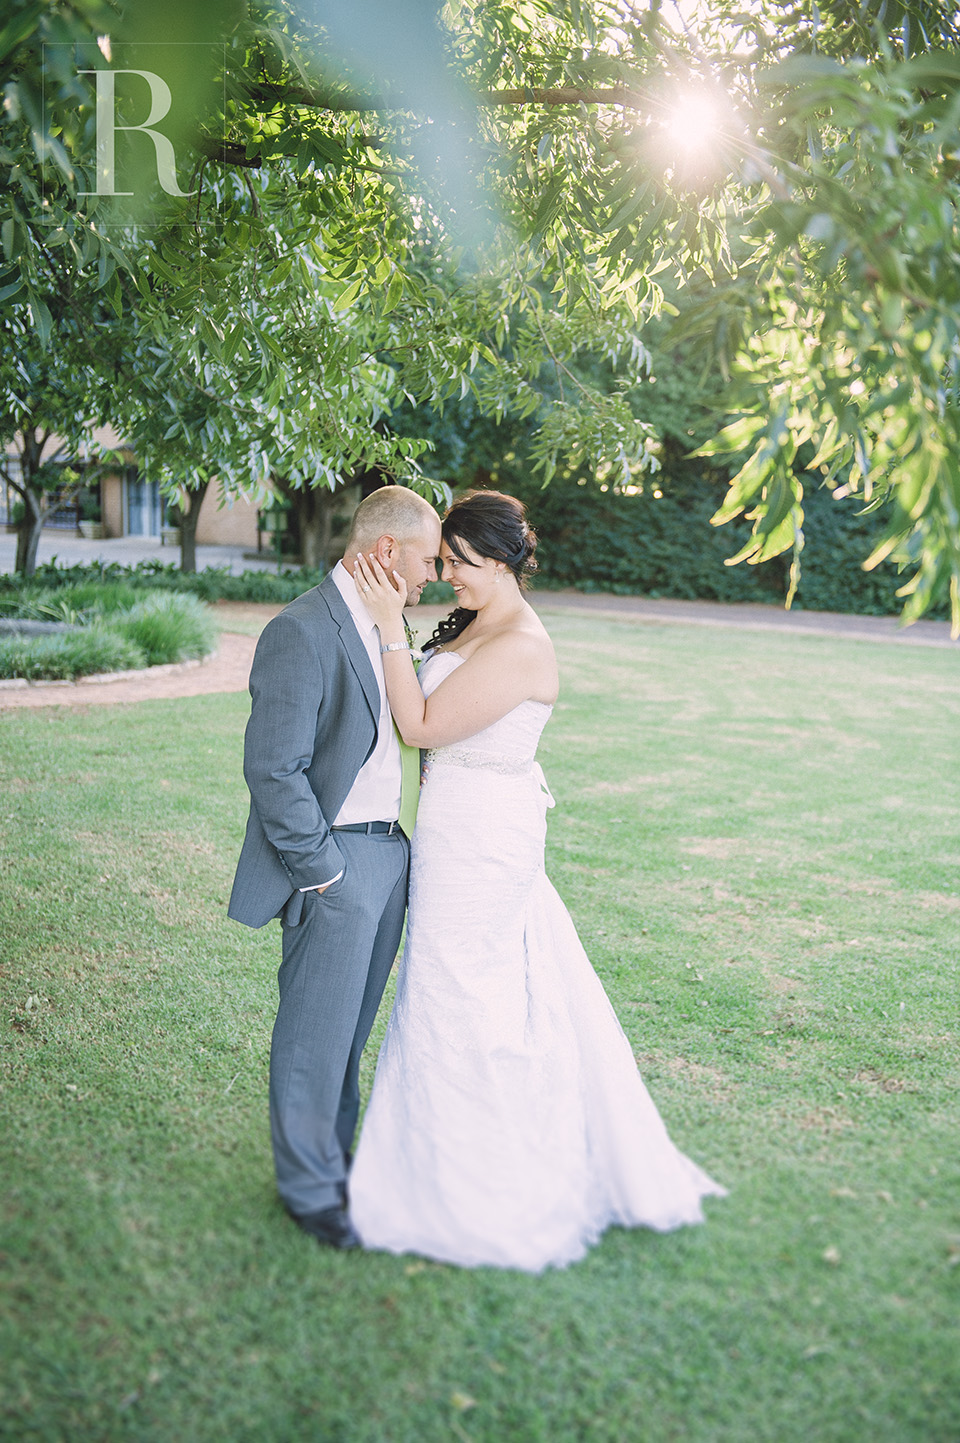 RYAN PARKER PHOTOGRAPHY_WEDDING_GAUTENG.jpg